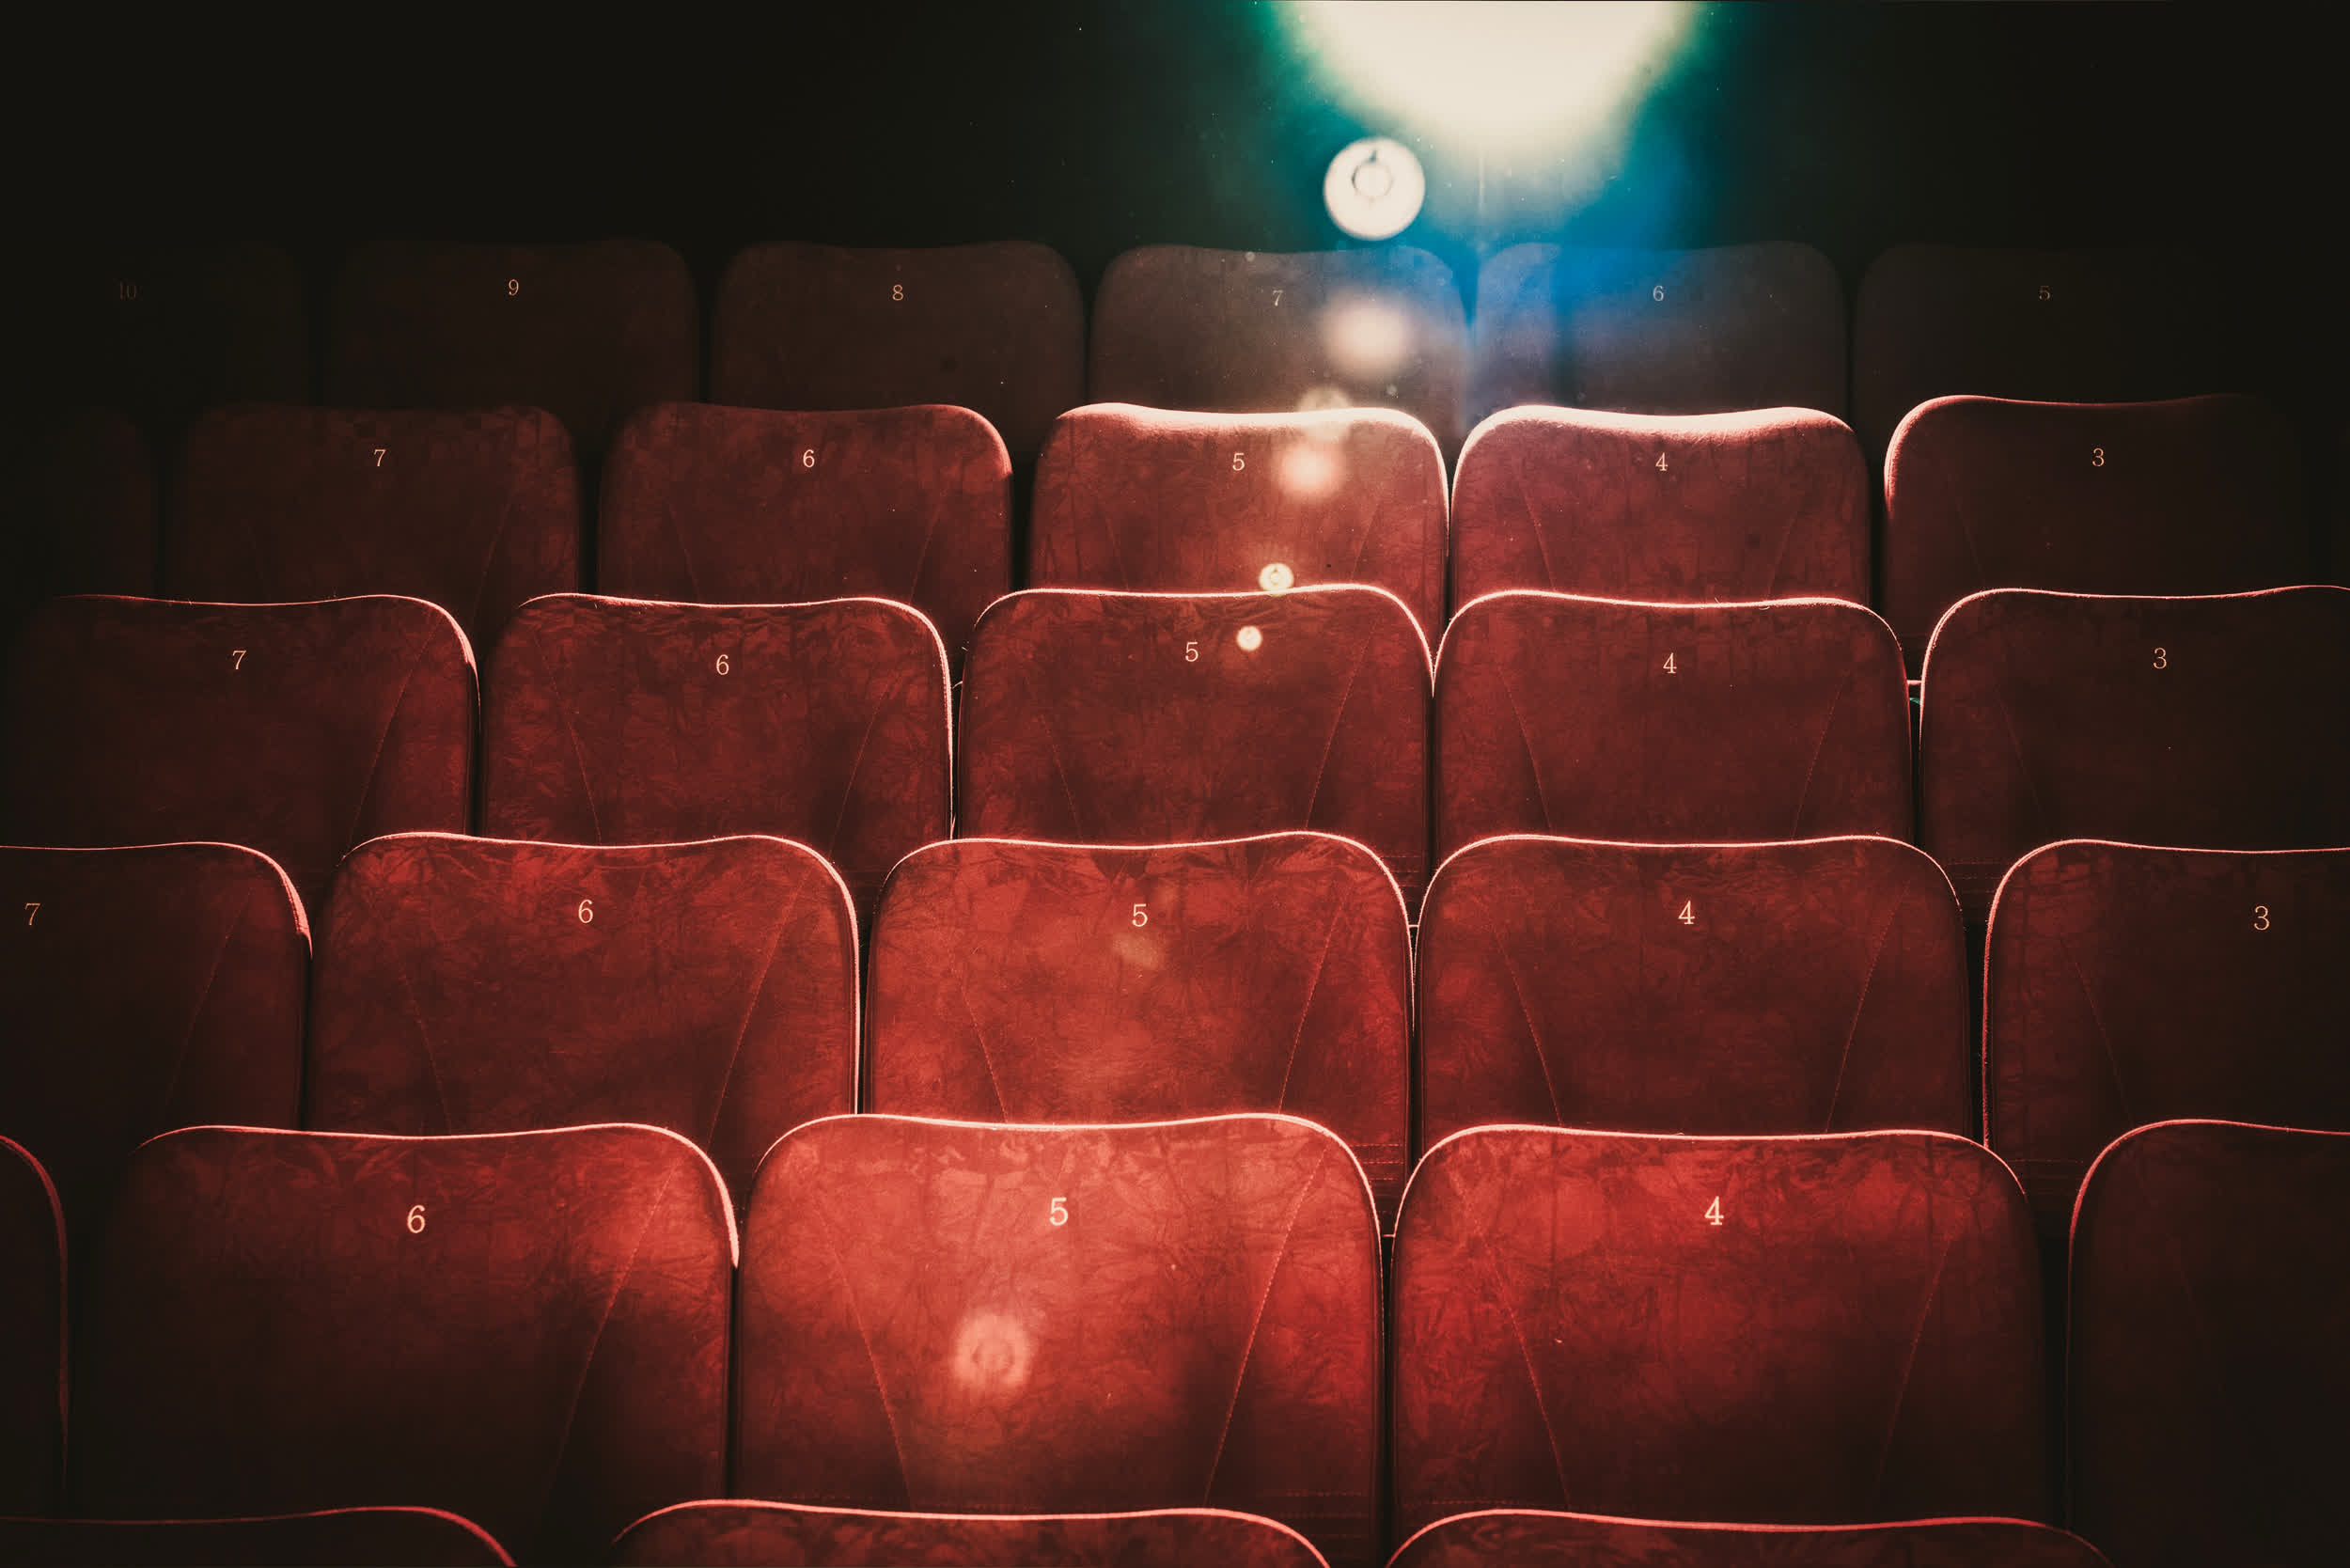 Attendance at AMC theaters in the US dipped 96.8 percent year over year in Q3